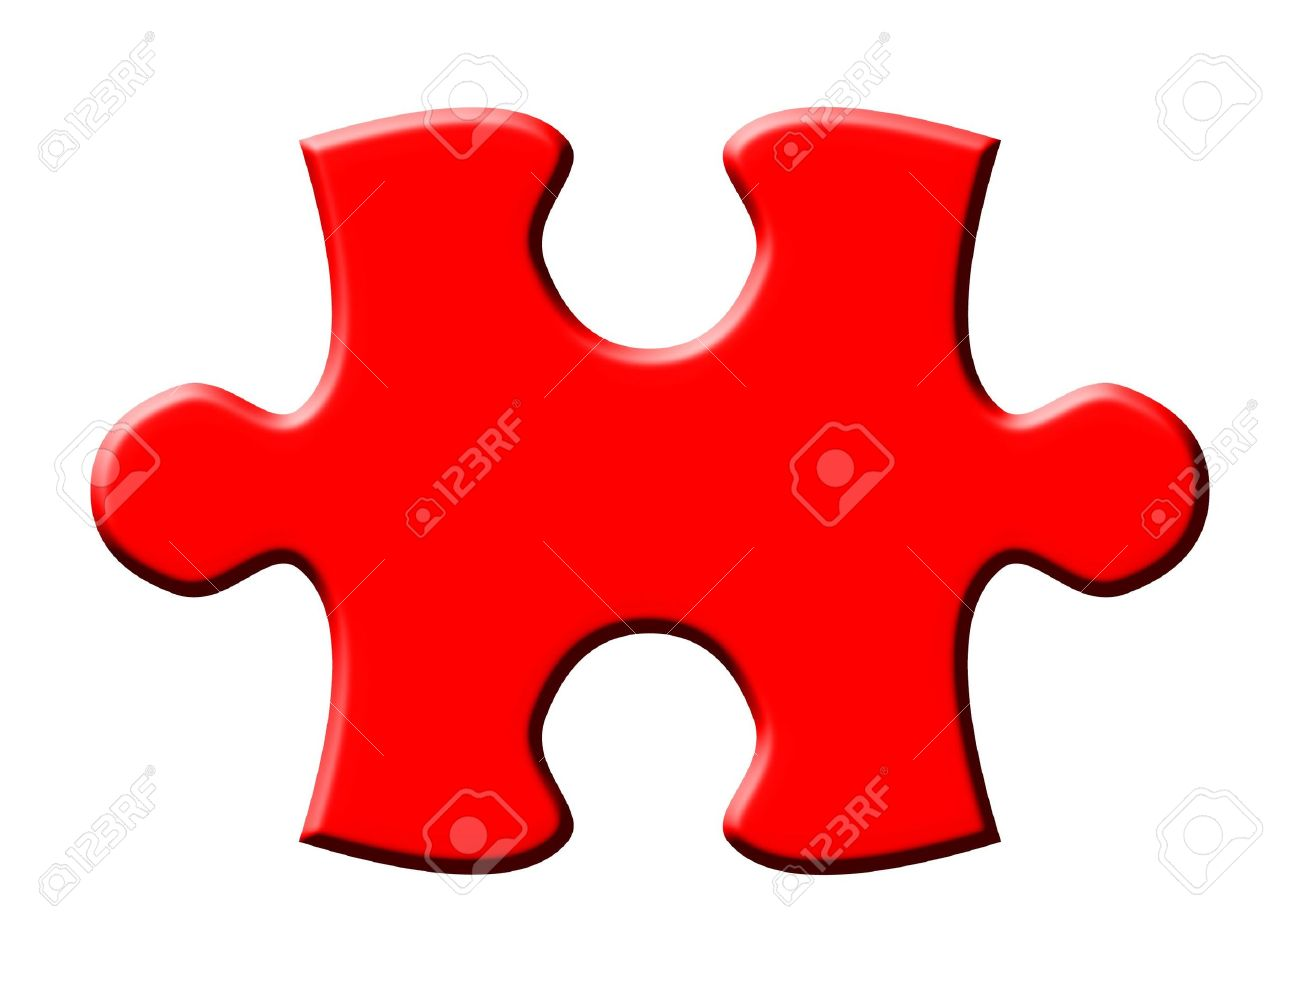 One Isolated Puzzle Piece Stock Photo, Picture And Royalty Free ...